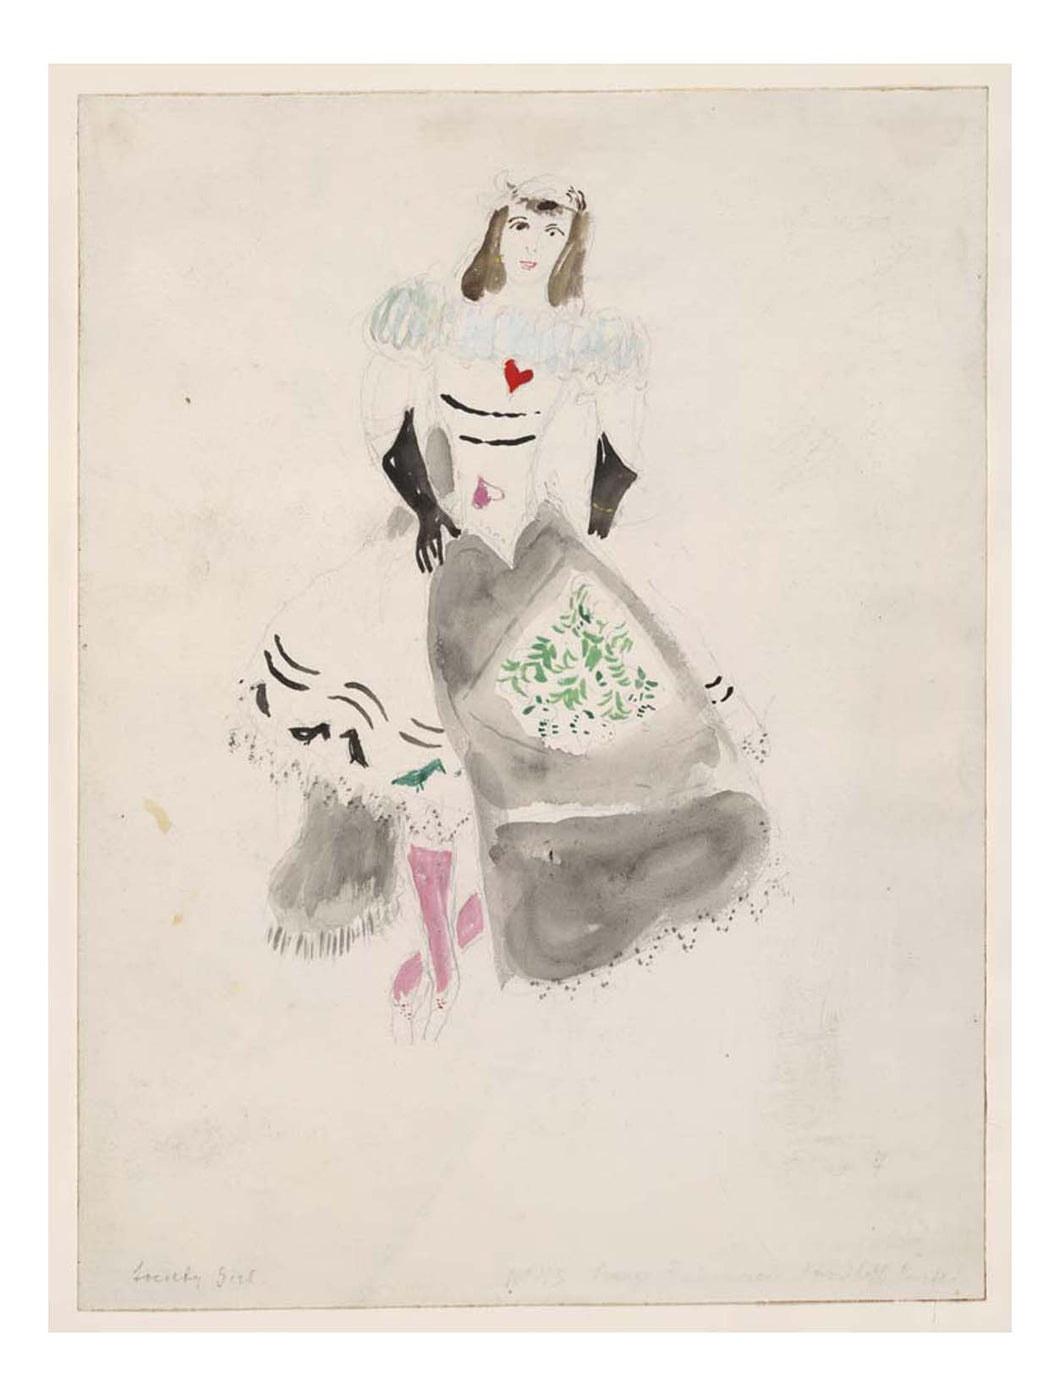 Marc Chagall - A Society Lady, costume design for Aleko, 16x12